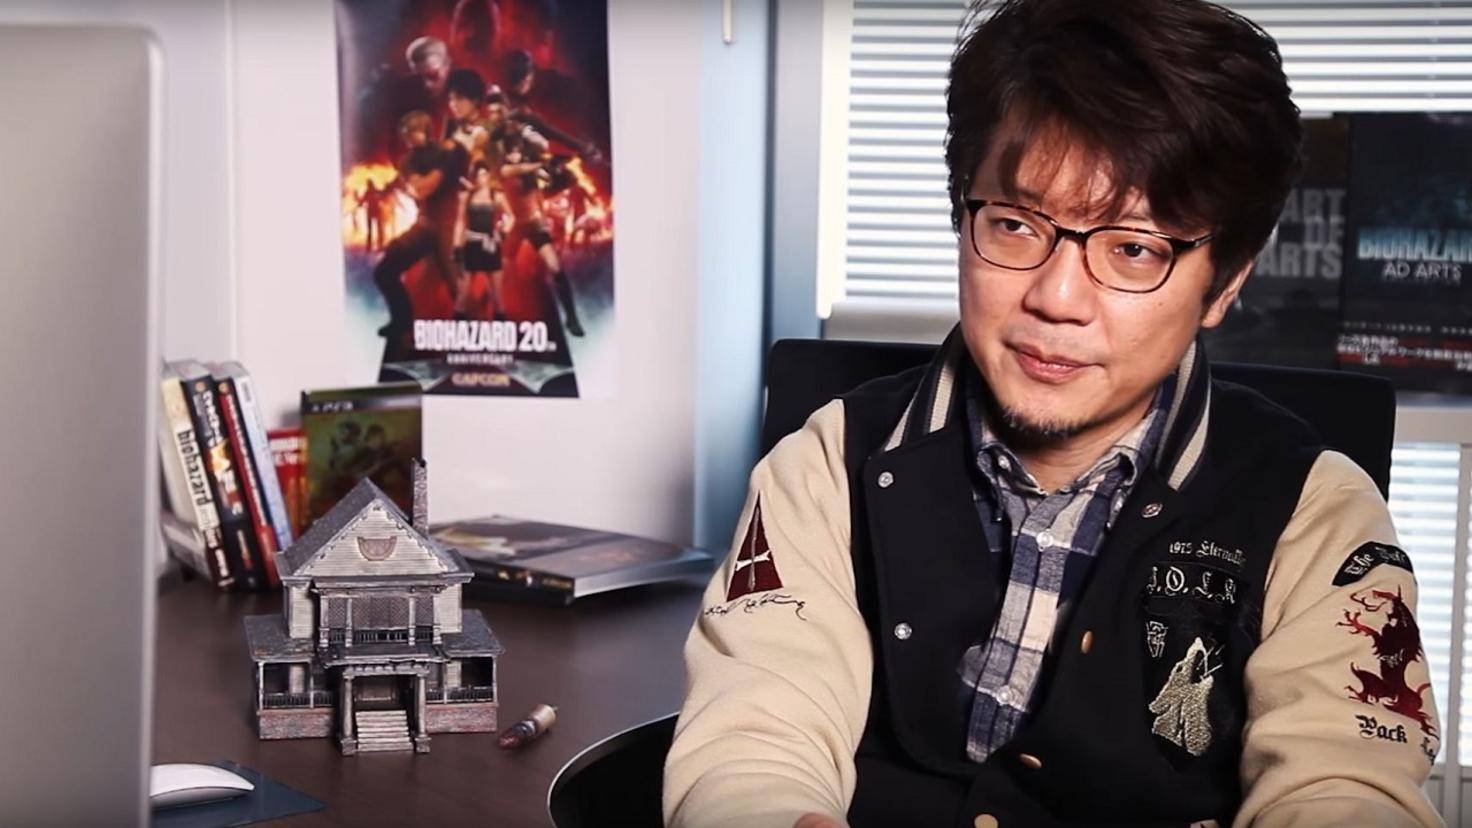 Resident Evil 7 producer Jun Takeuchi